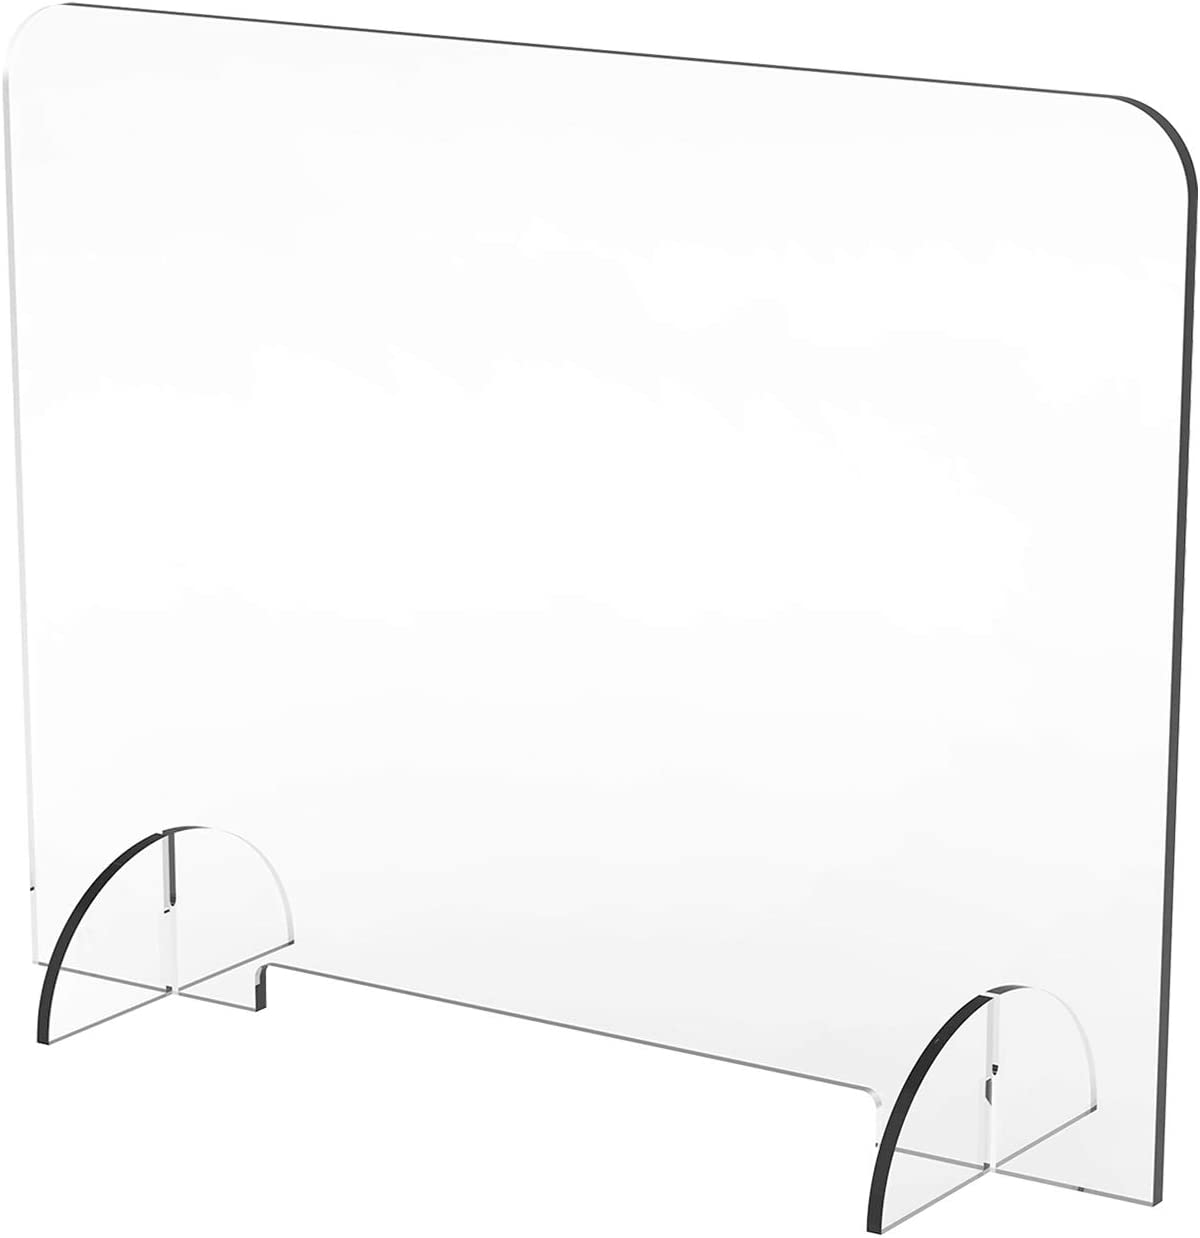 "DeskDefender Plexiglass Sneeze Guard | 36"" Wide x 24"" Tall 